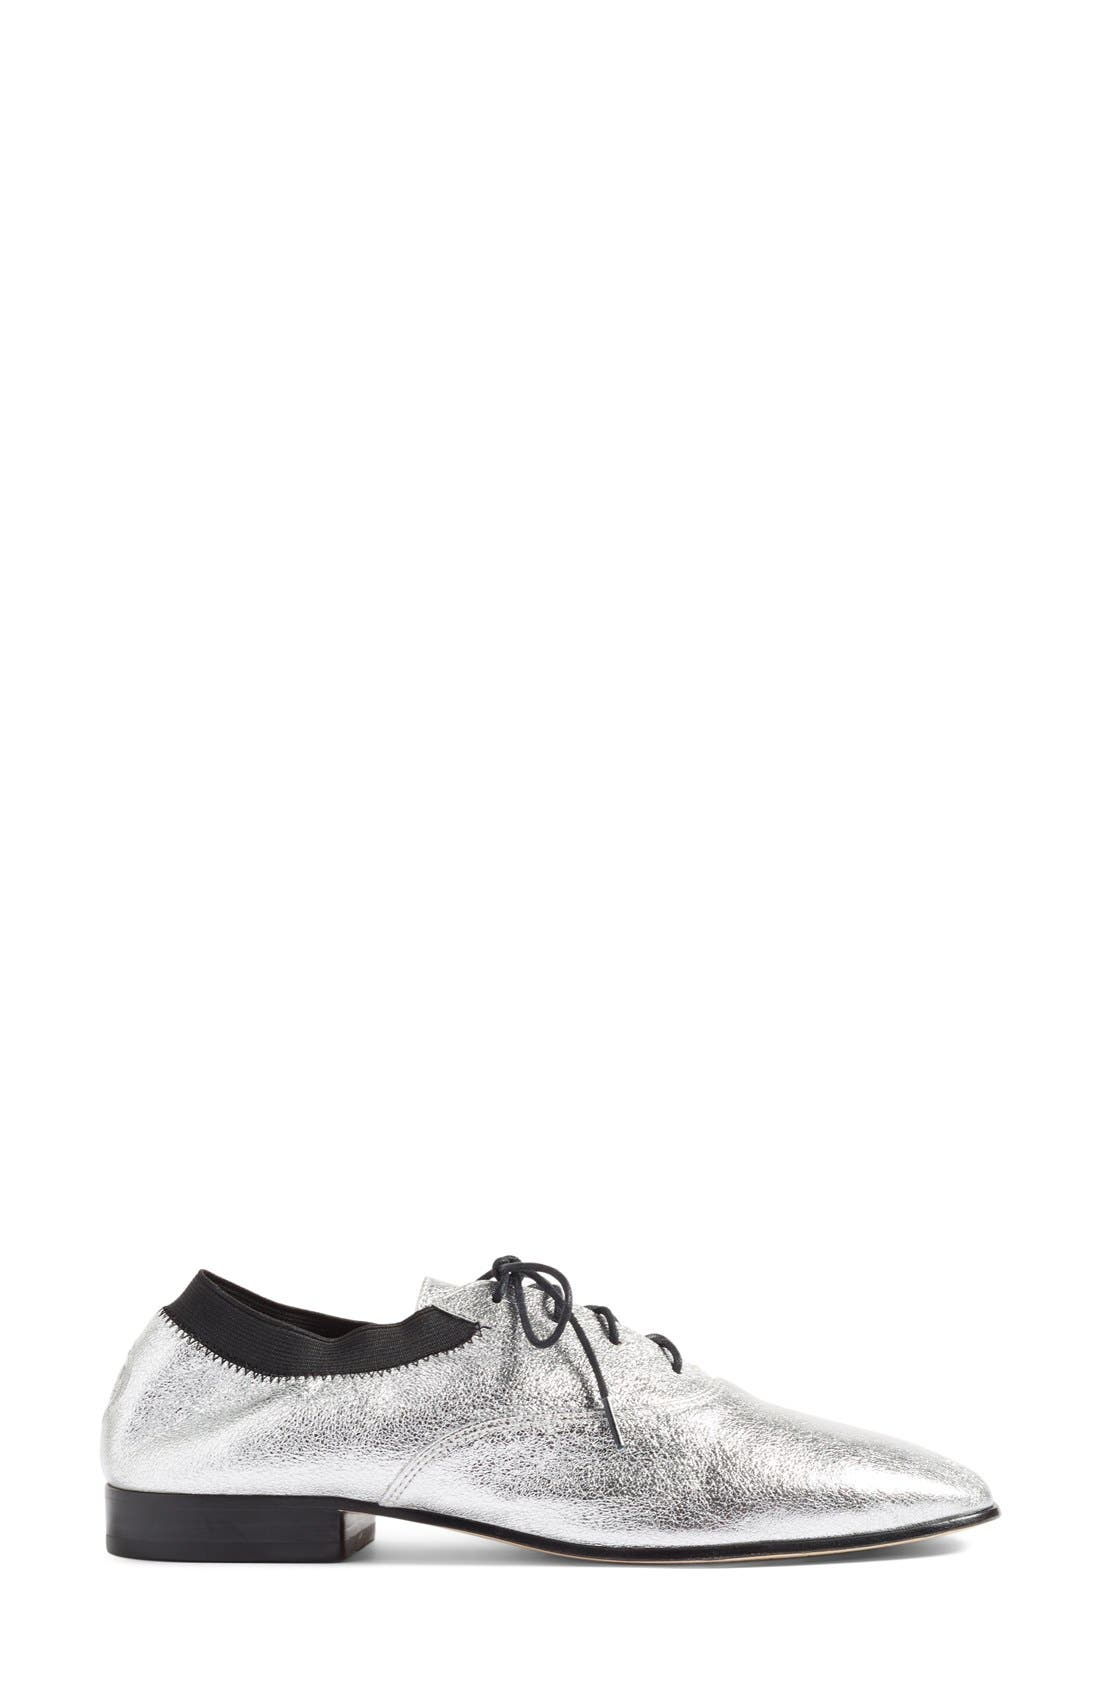 TORY BURCH,                             Bombe Oxford,                             Alternate thumbnail 4, color,                             041